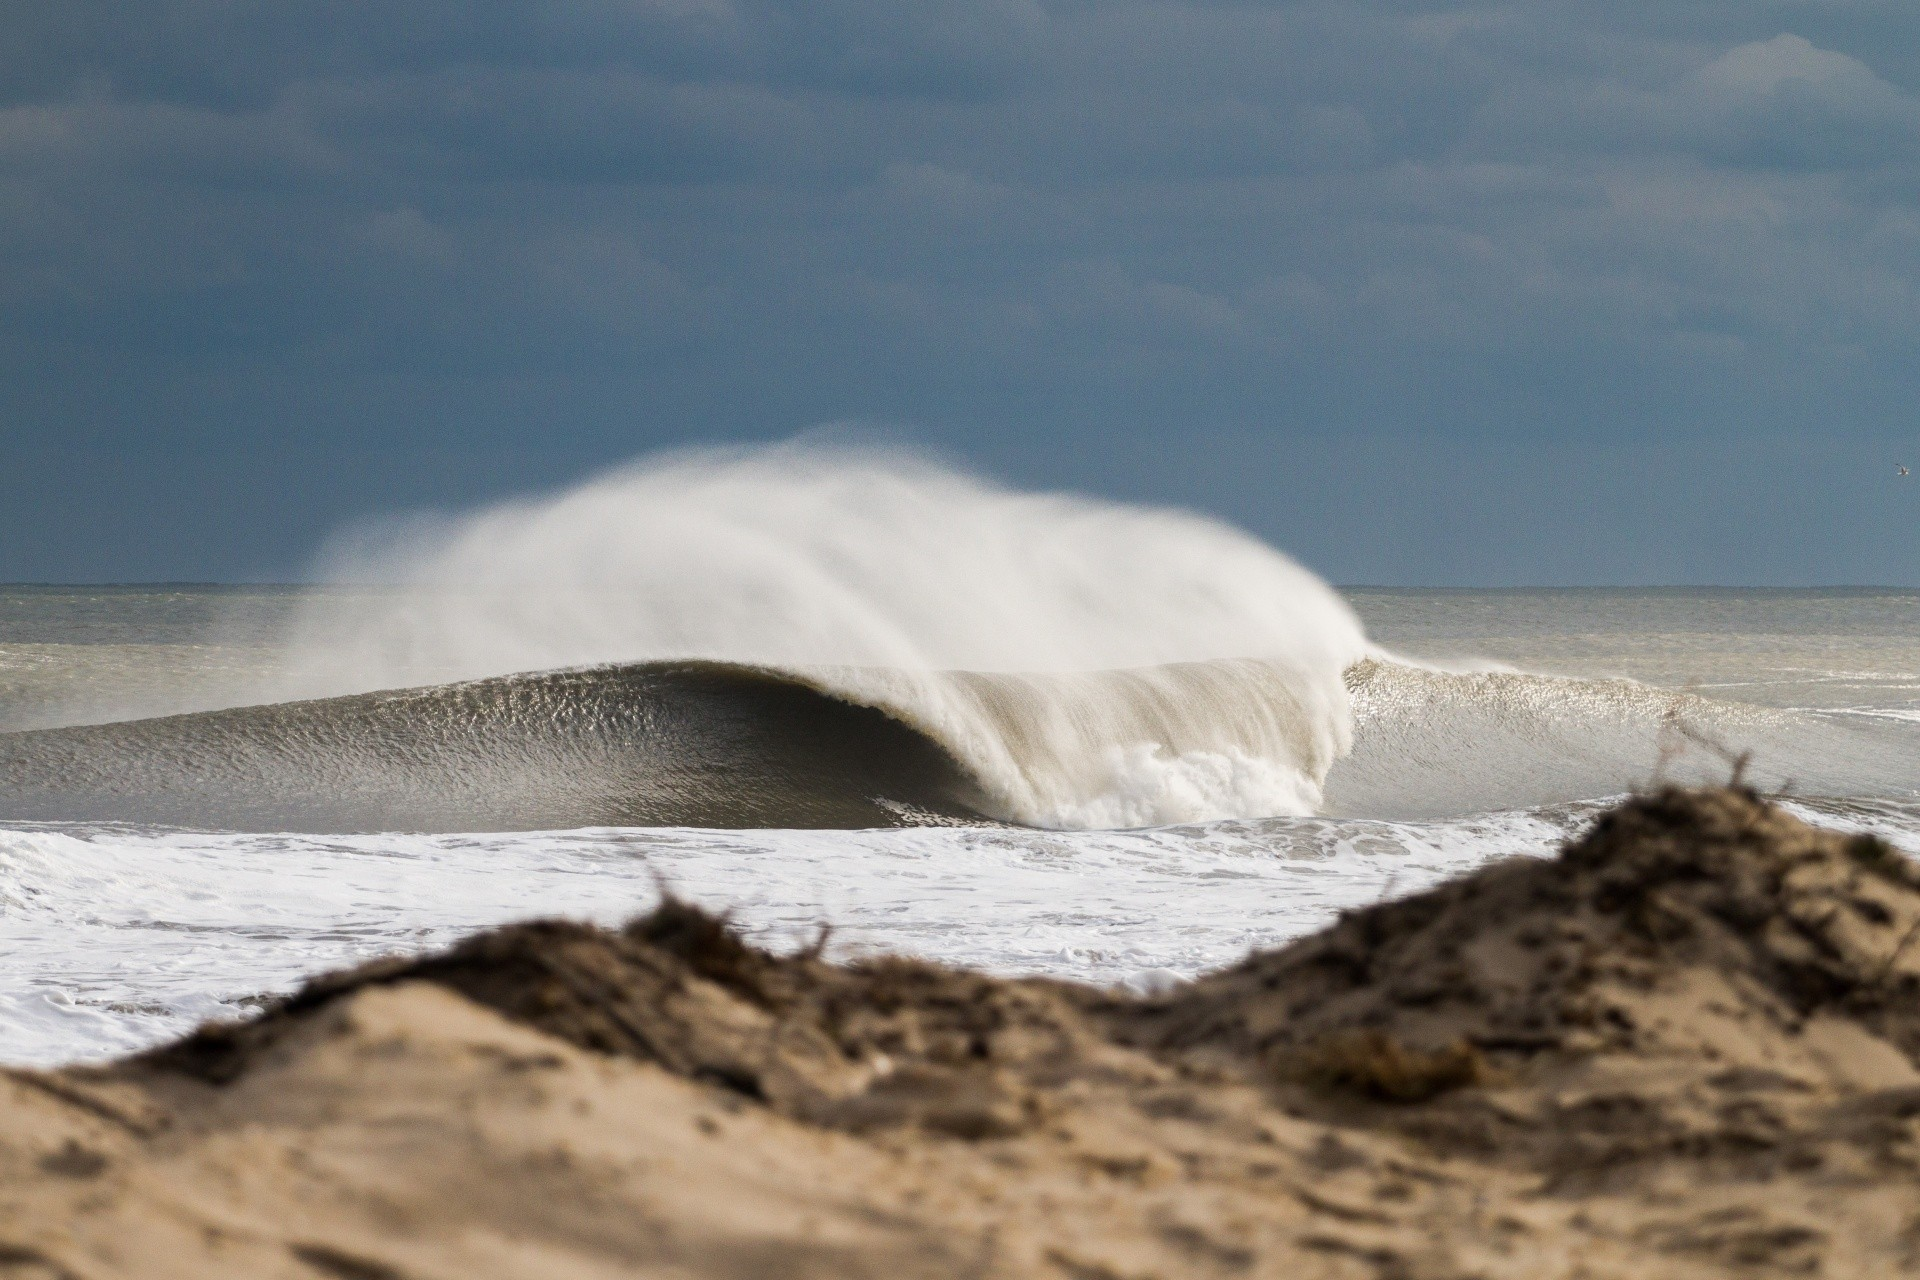 Tyler_Bradley's photo of Manasquan